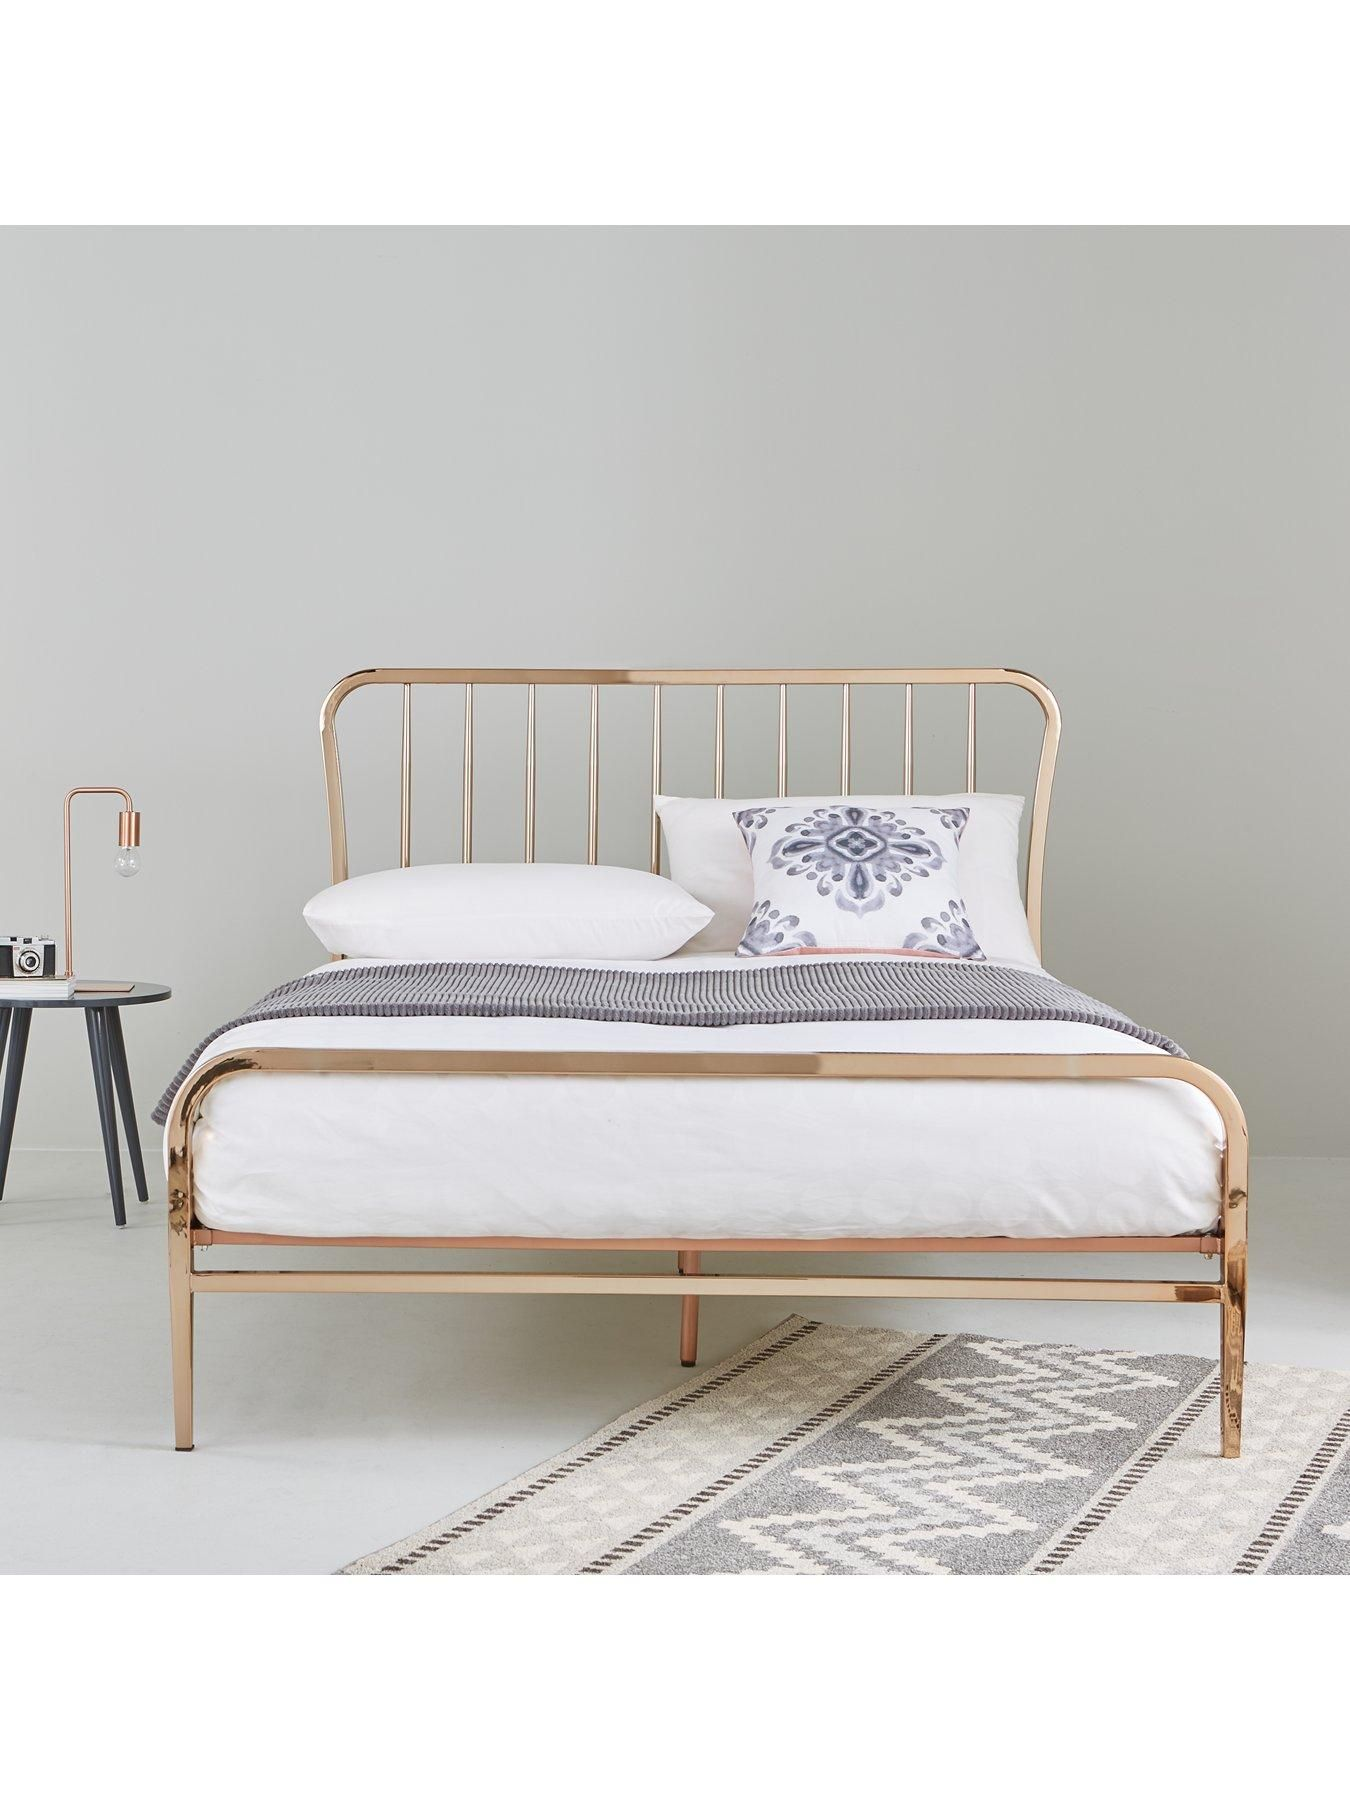 Webster Metal Double Bed Frame | Mattresses in 2018 | Pinterest ...